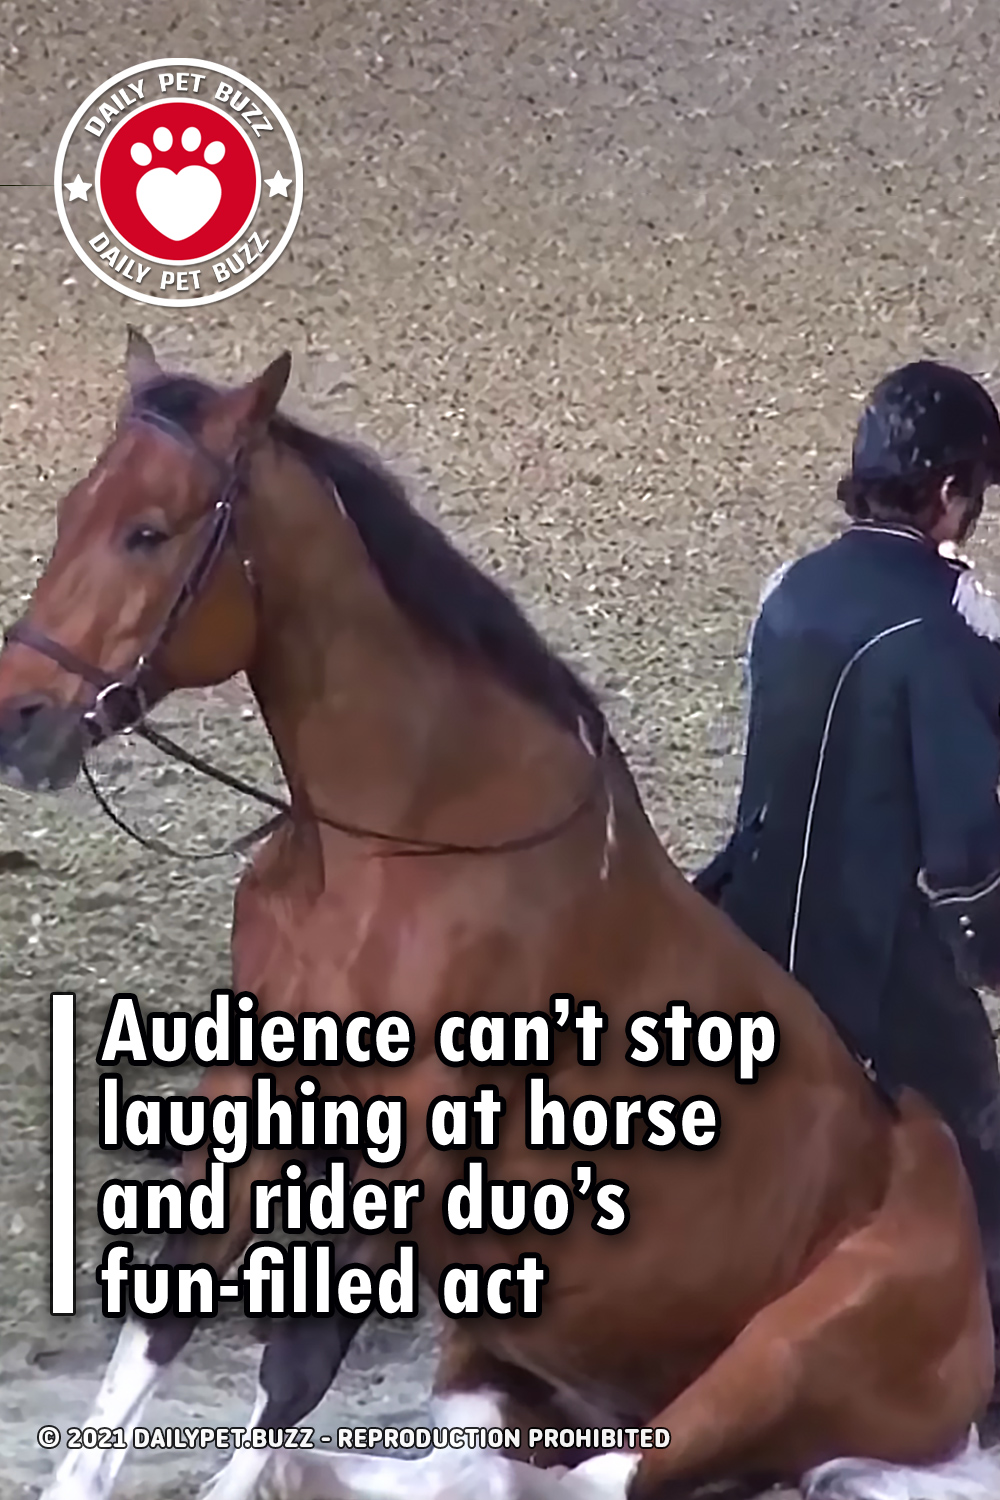 Audience can't stop laughing at horse and rider duo's fun-filled act